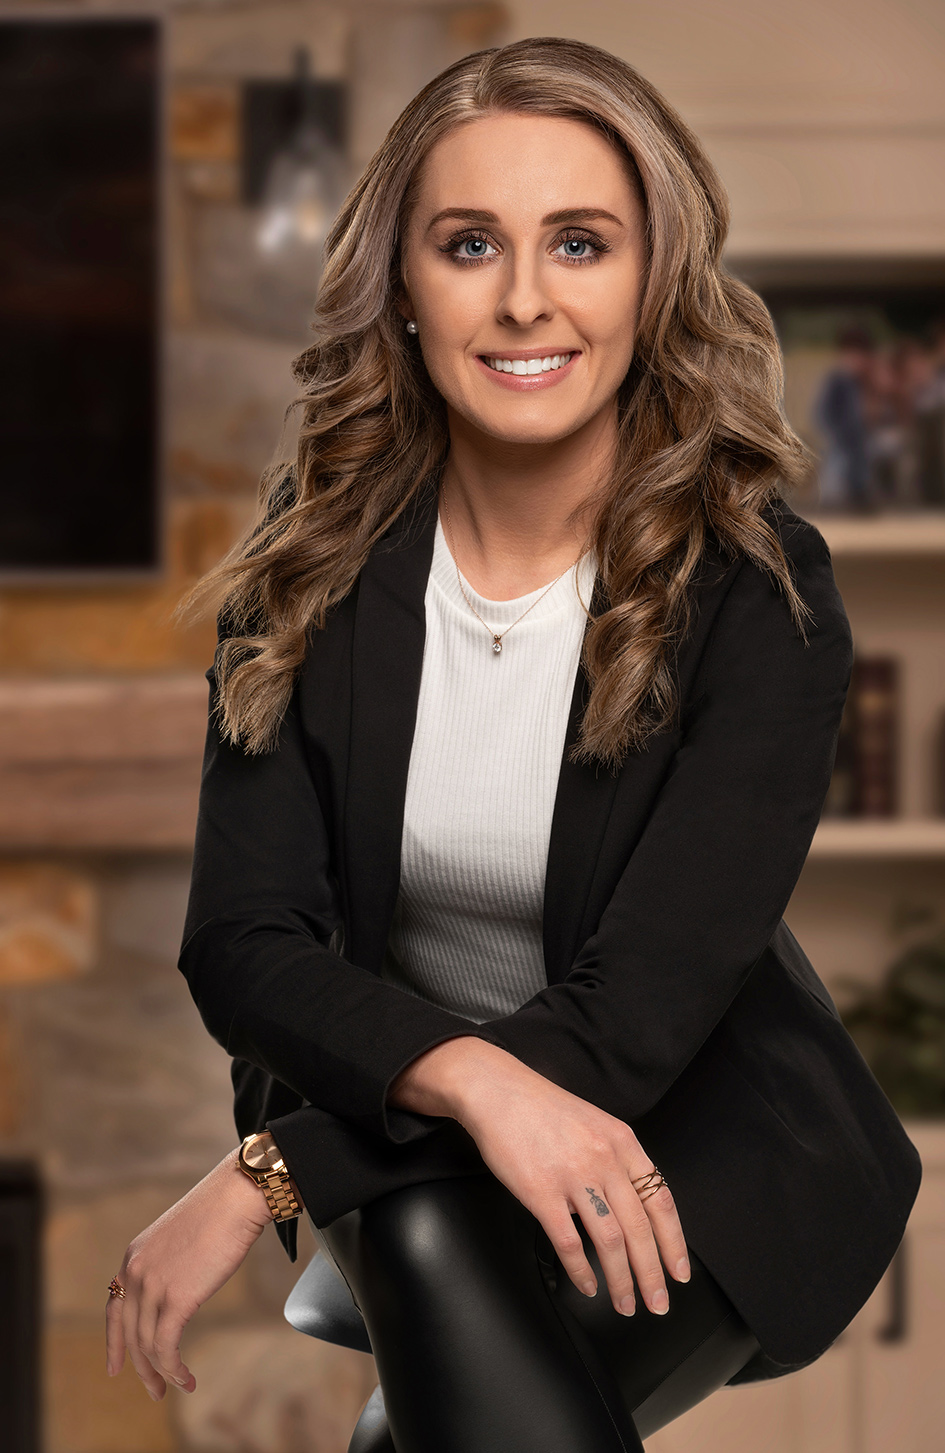 realtor headshot real estate agent portrait